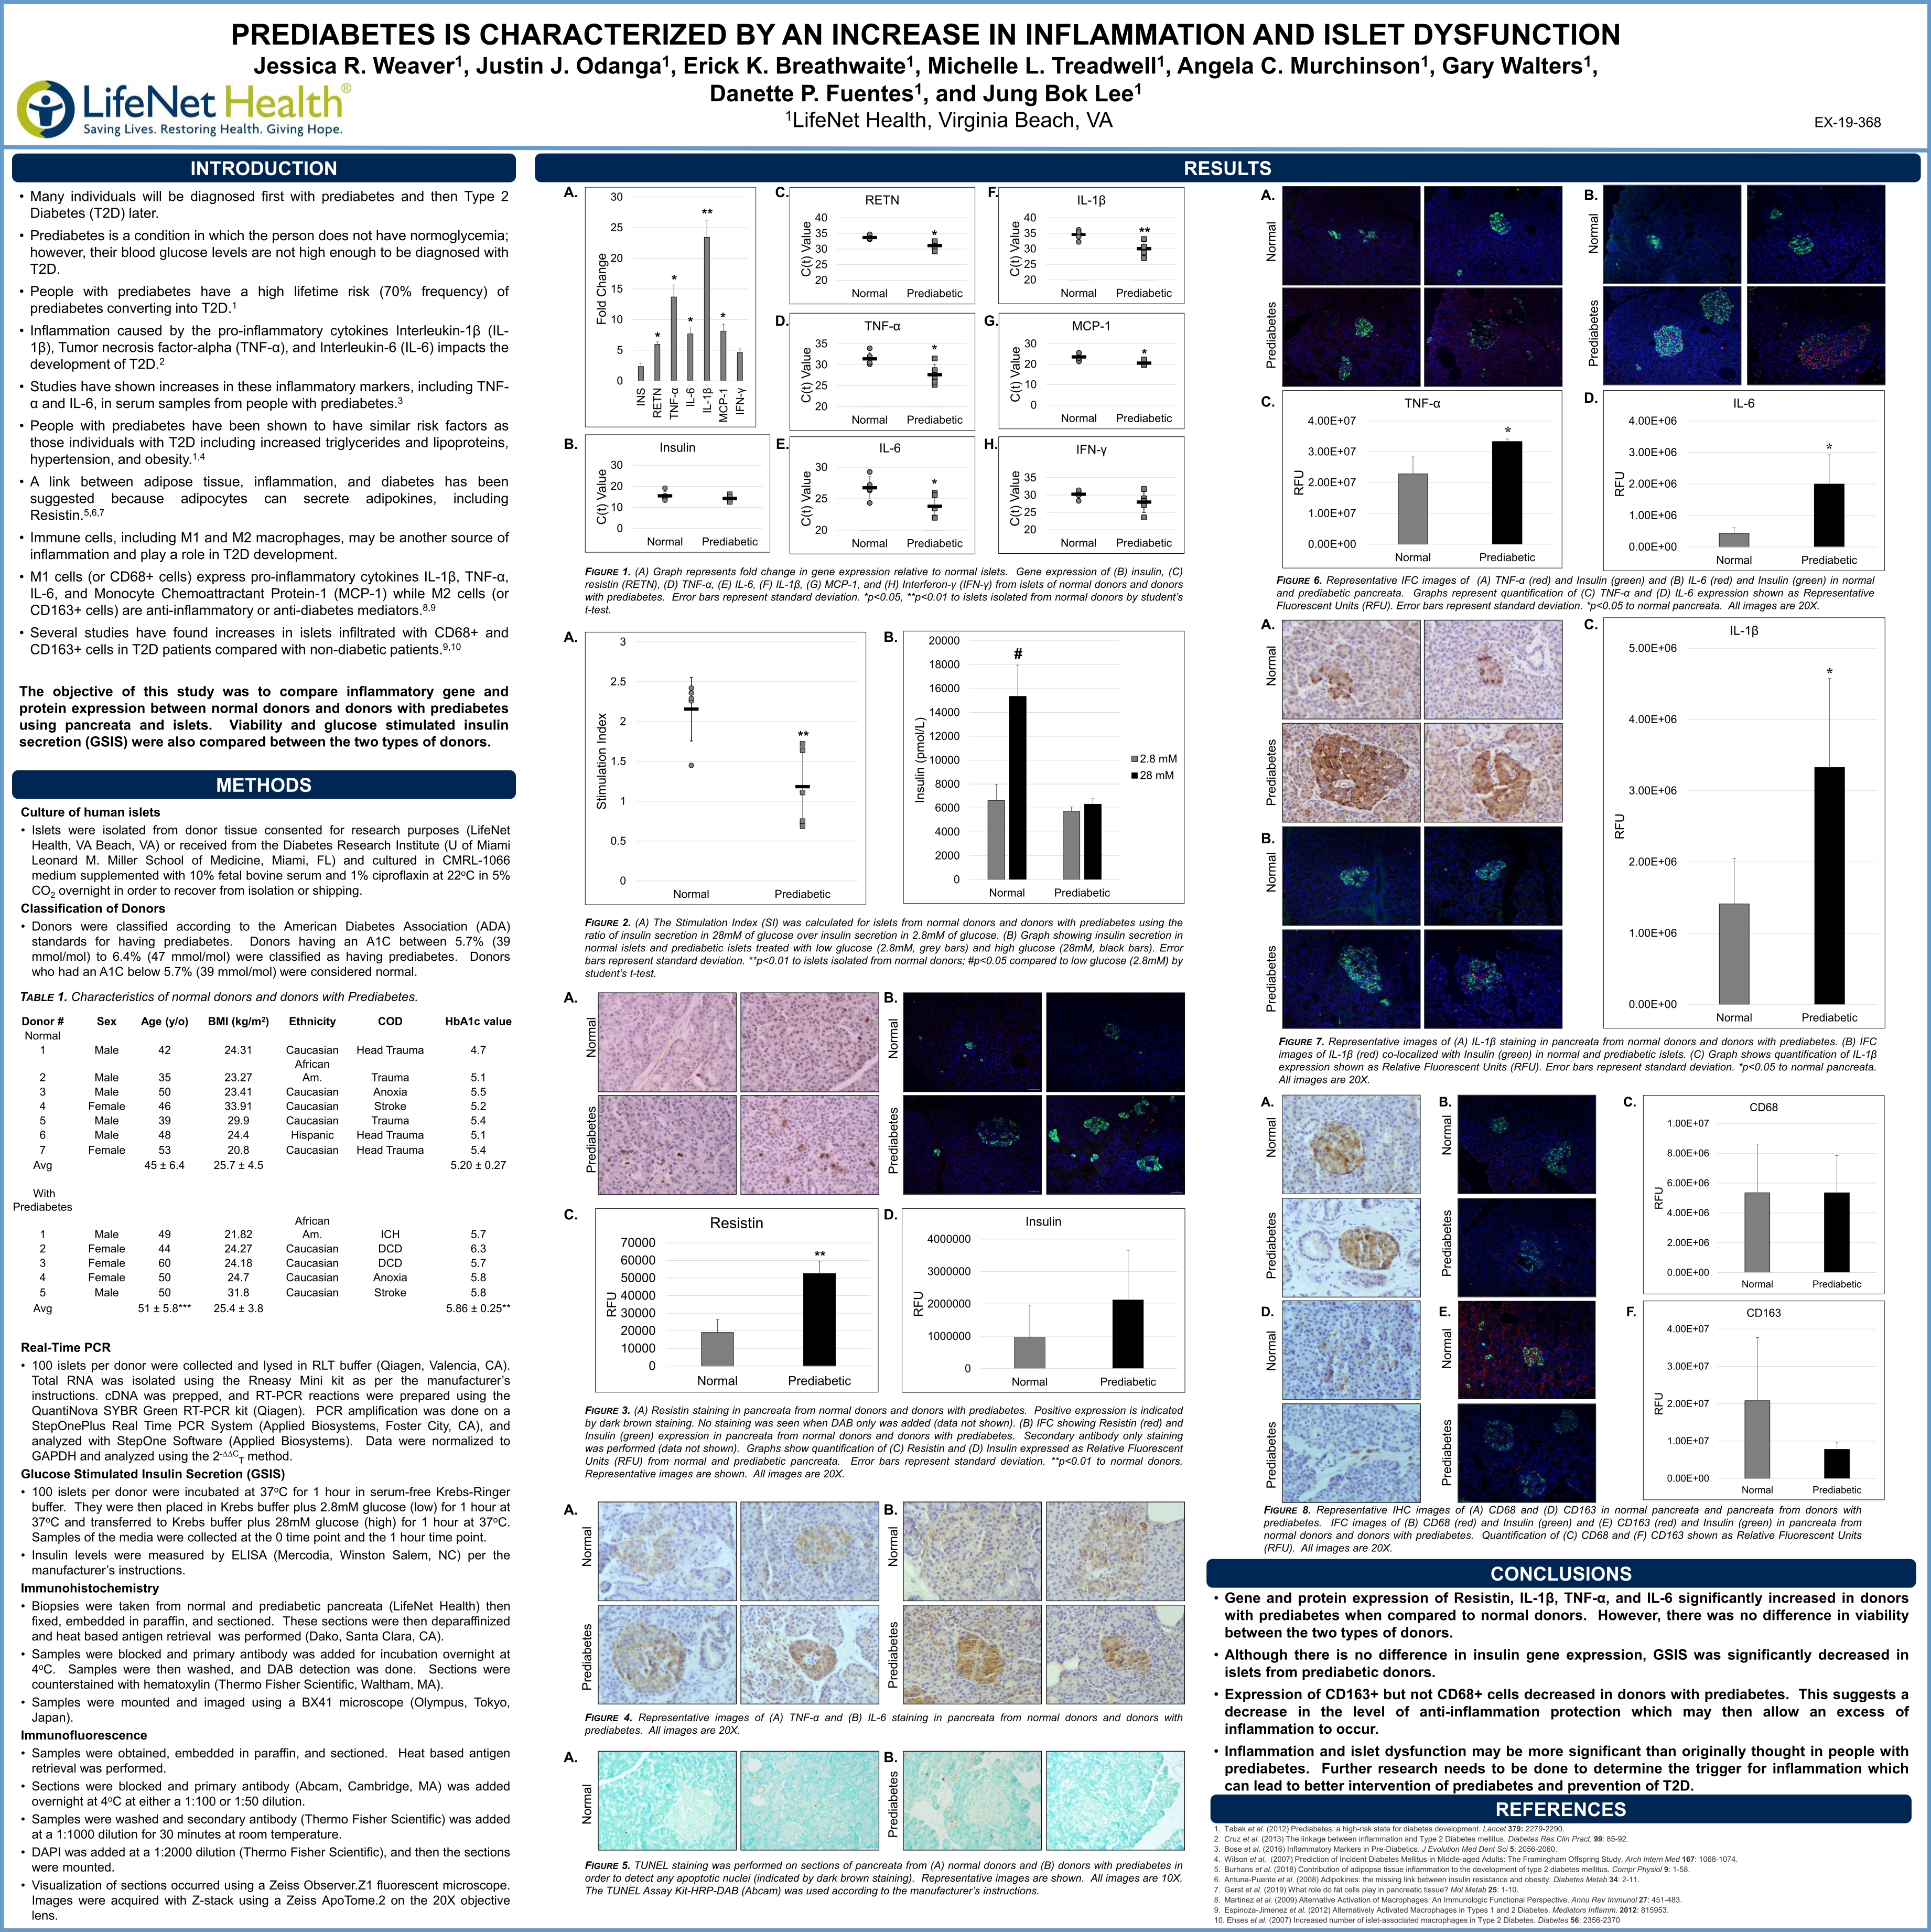 Presented at Keystone Symposia Conference 2020